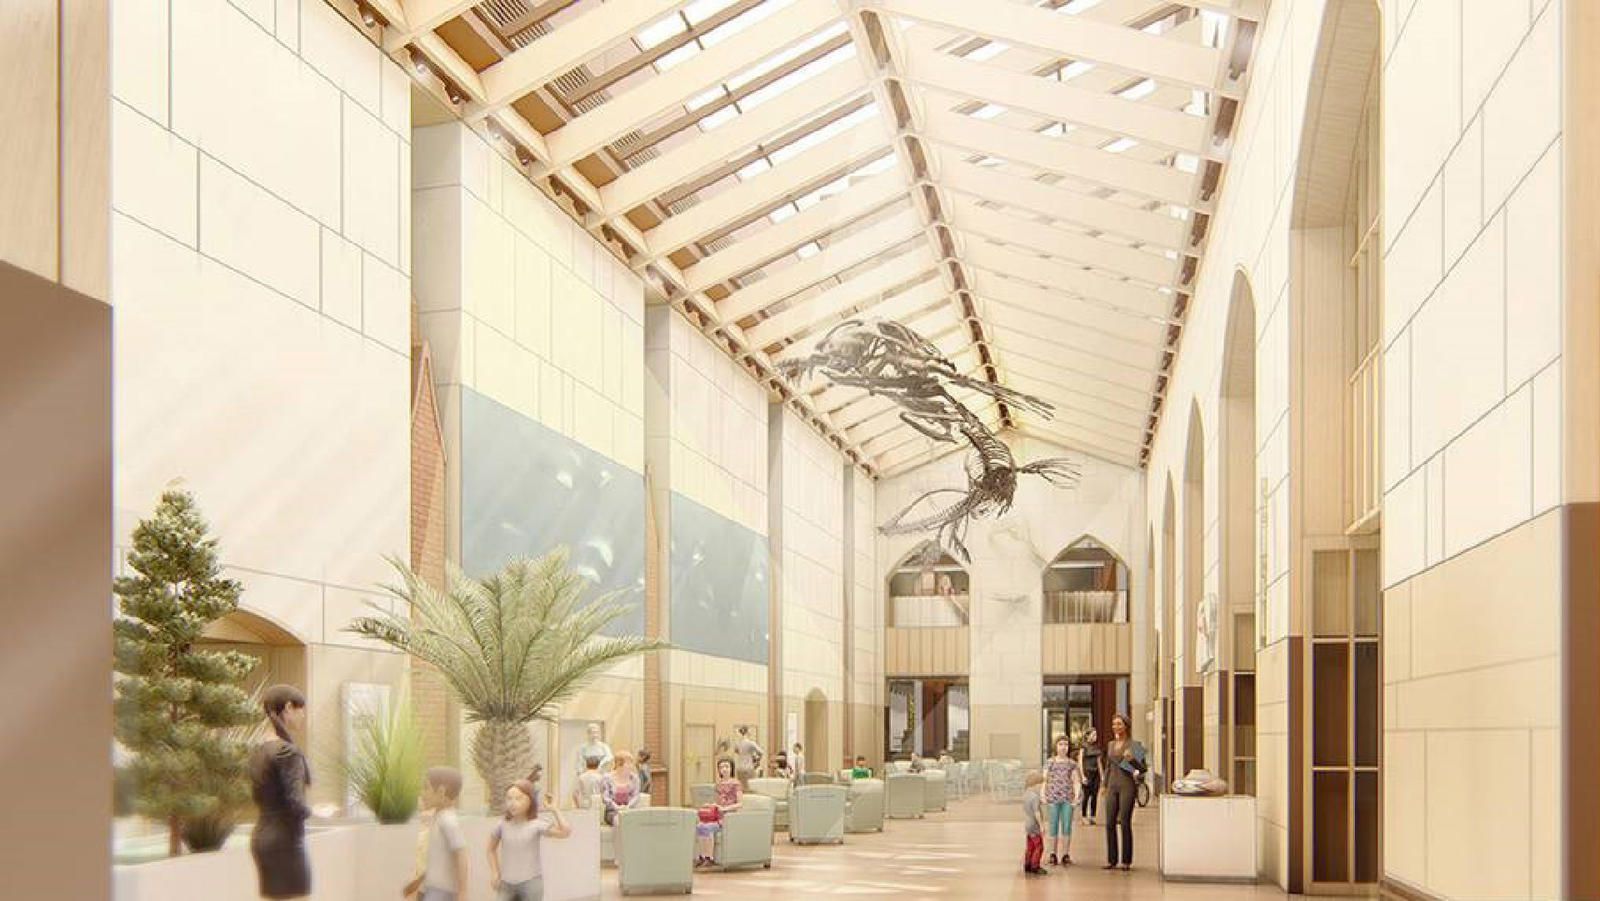 Digital rendering showing the future atrium to be constructed between Peabody Museum and the Environmental Science Center.